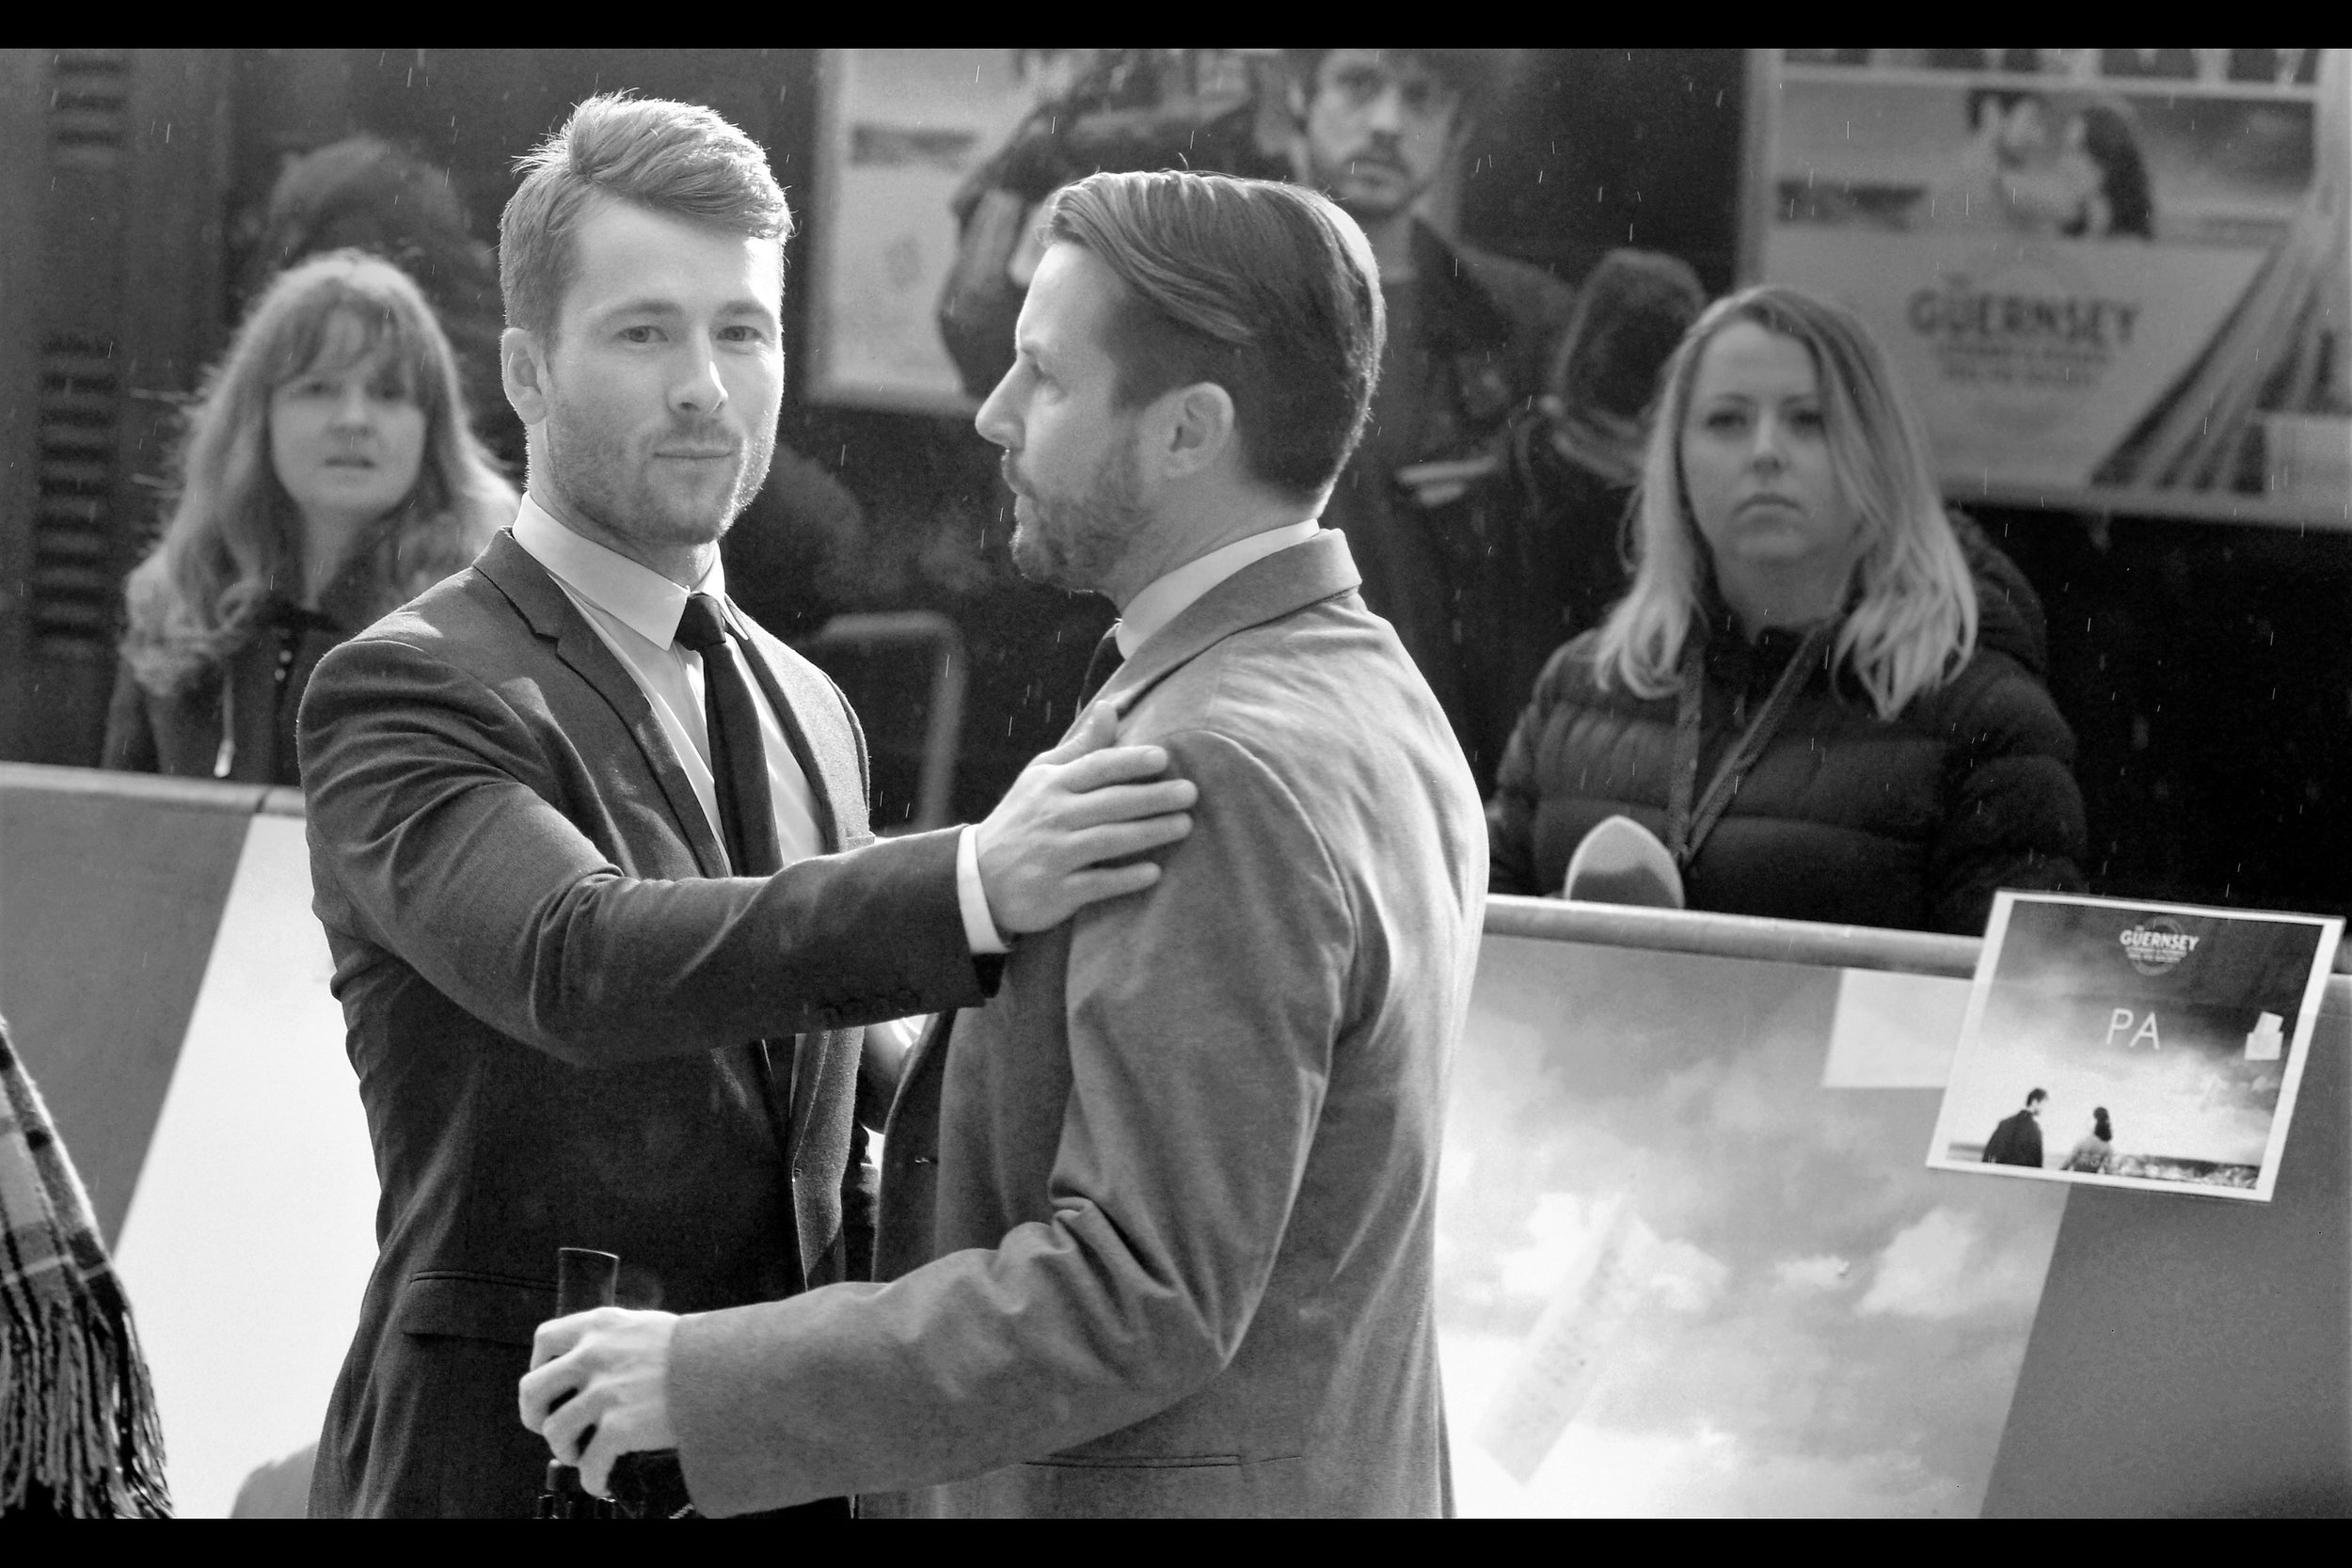 """""""Hold that thought. I think I hear an autograph dealer who needs me"""" . Glen Powell also had a role in the third Expendables film.... AND played the role of 'Trader 1' in Christopher Nolan's The Dark Knight Rises!"""